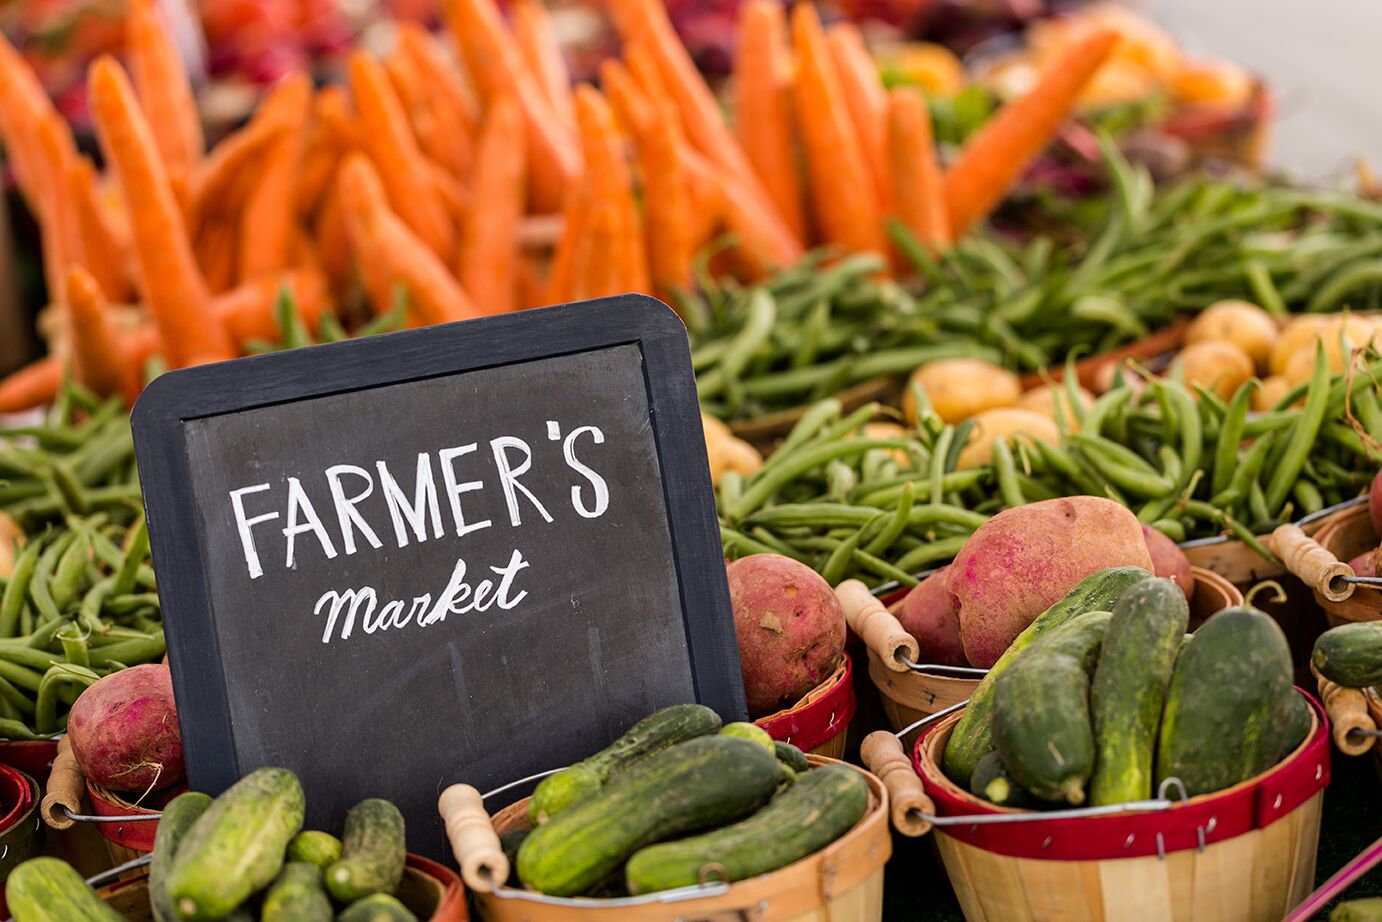 Farmers Market for fresh vegetables and meats